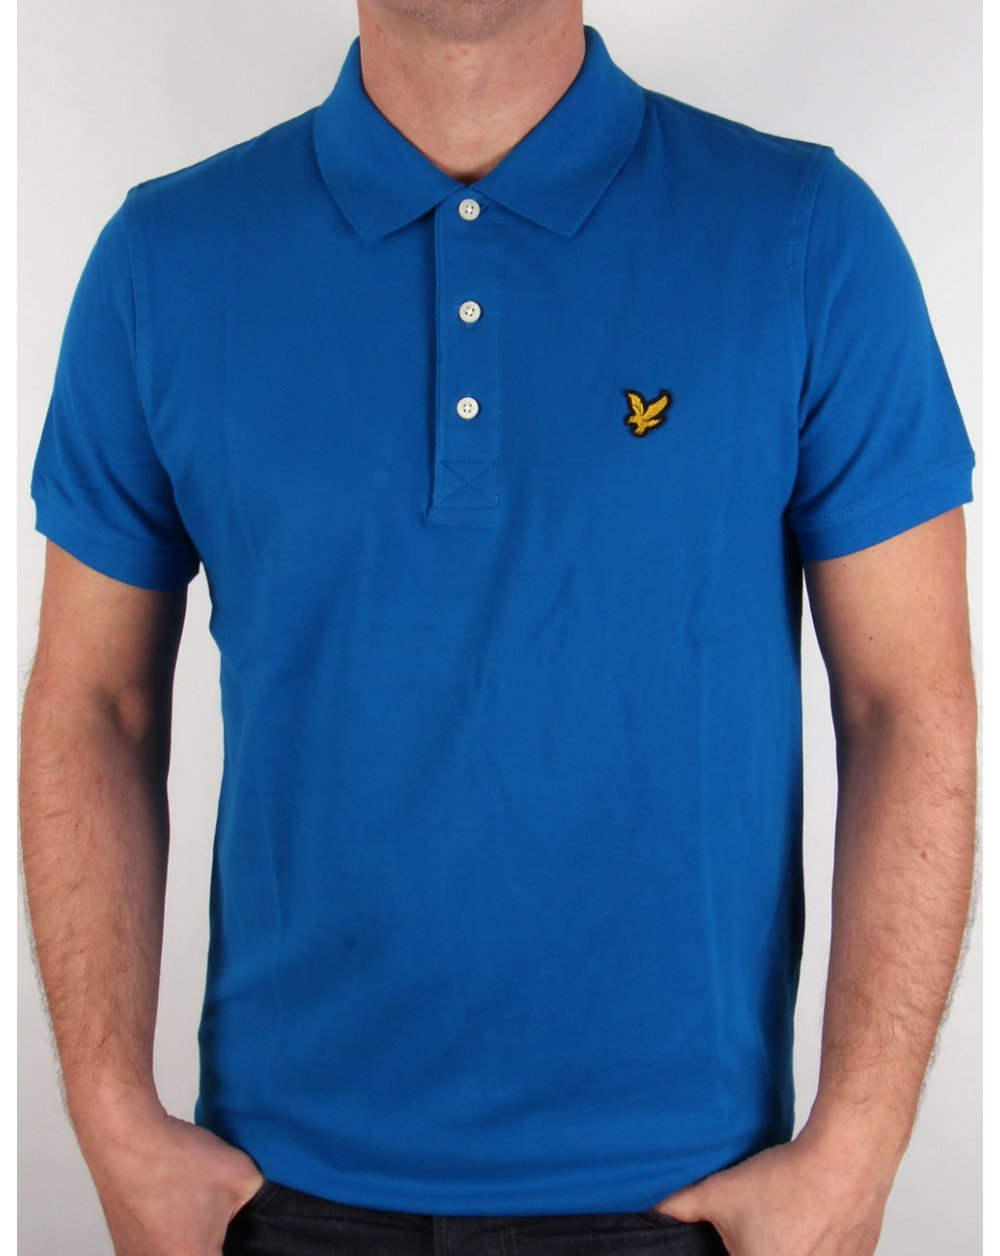 lyle and scott polo shirt deep cobalt mens neck sale. Black Bedroom Furniture Sets. Home Design Ideas